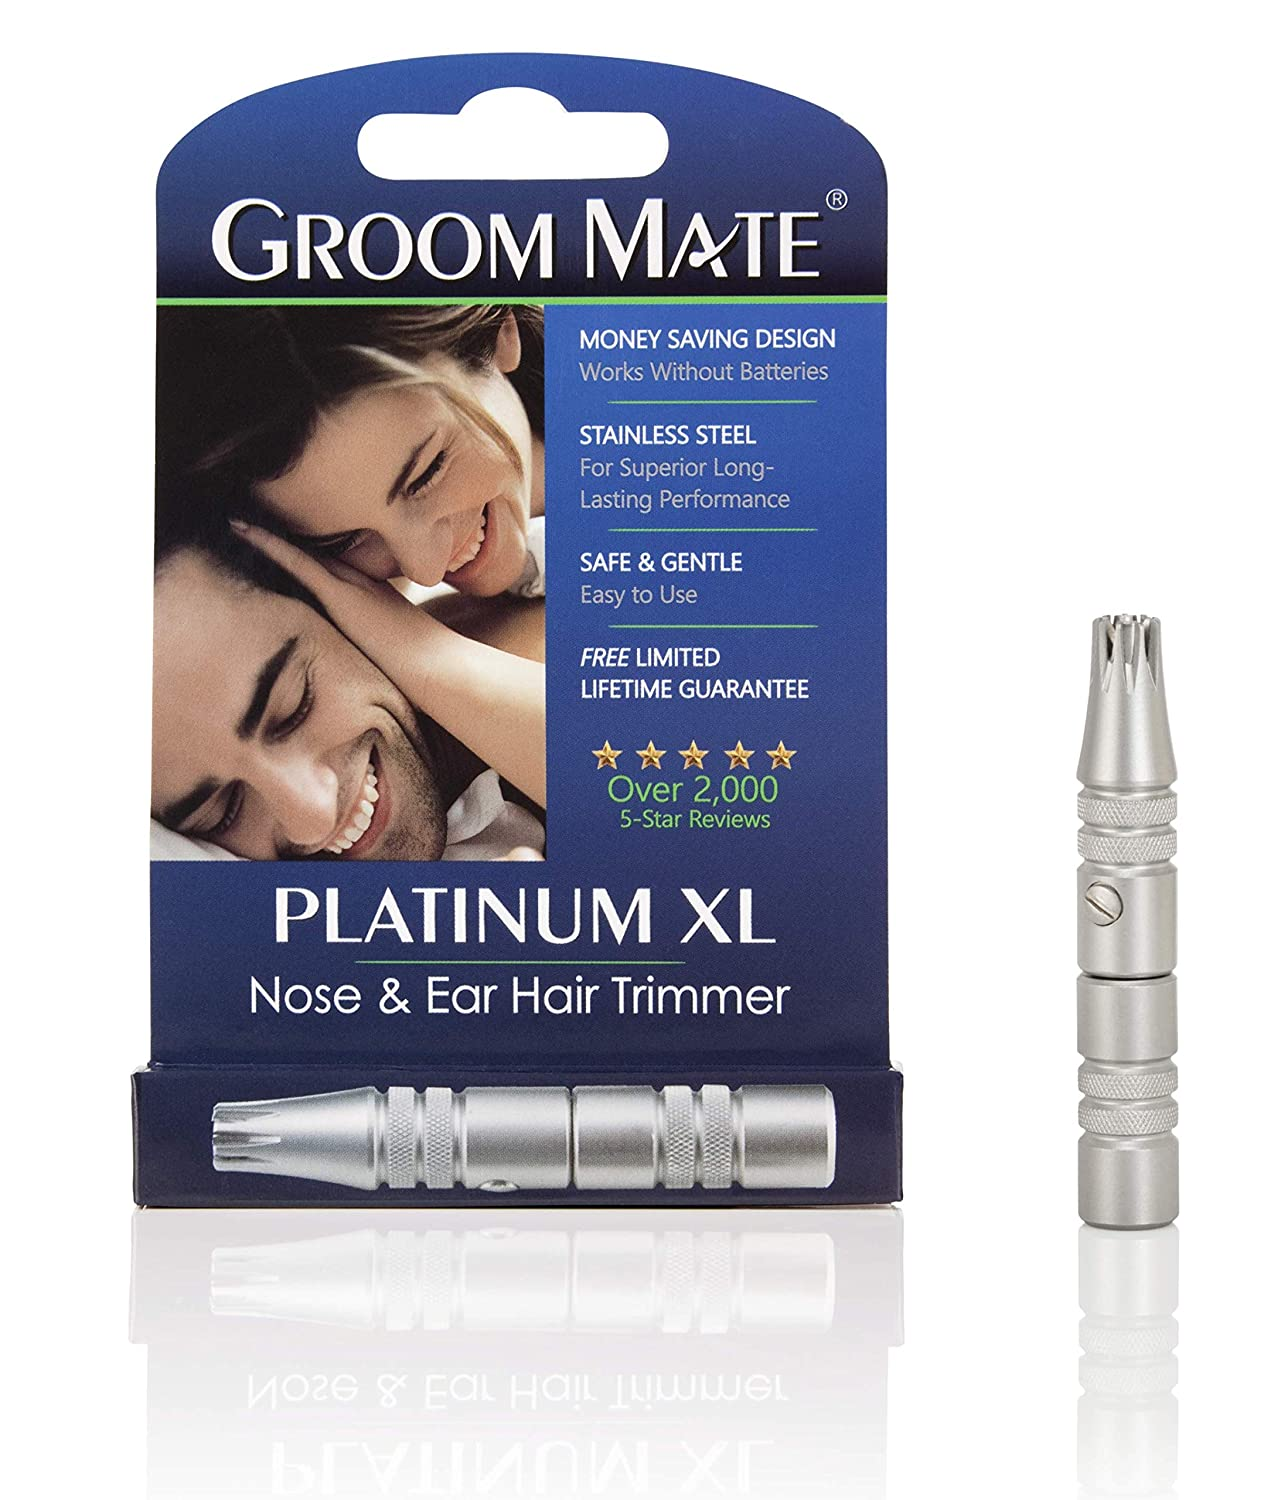 Groom Mate Platinum XL Nose & Ear Hair Trimmer BEI - PHR Systems Limited GMG25420-BRK